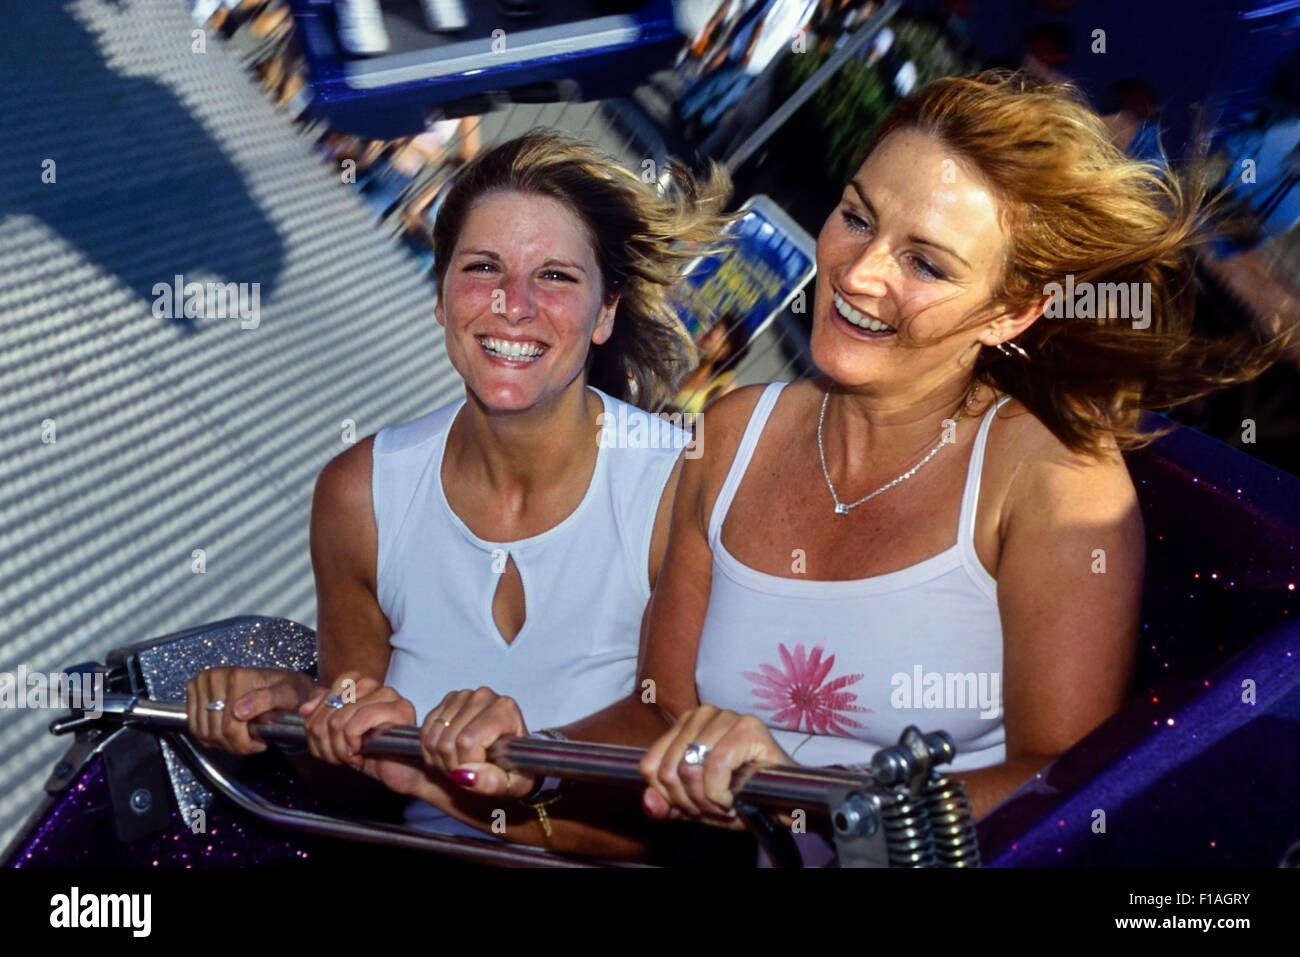 A couple of women enjoying a ride at Adventure Island. Southend-on-Sea. Essex. England - Stock Image